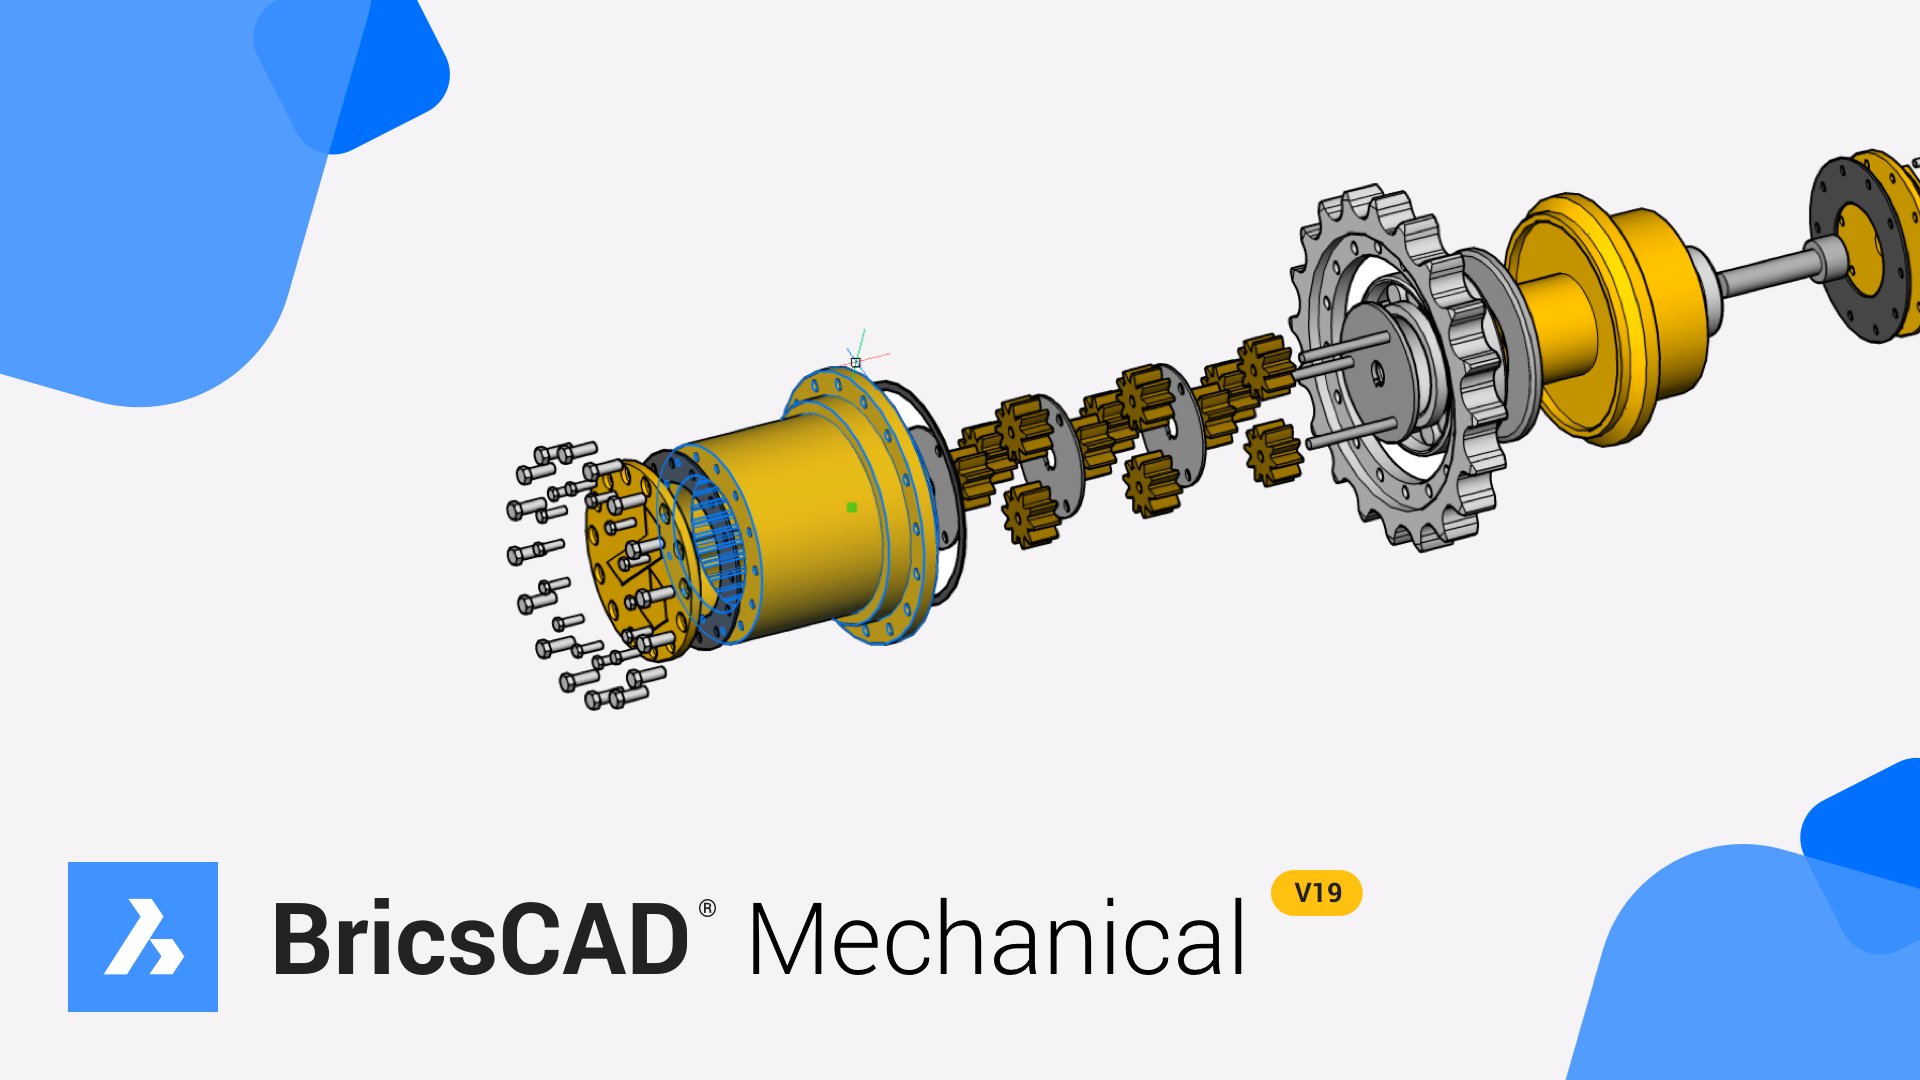 Introducing BricsCAD® Mechanical